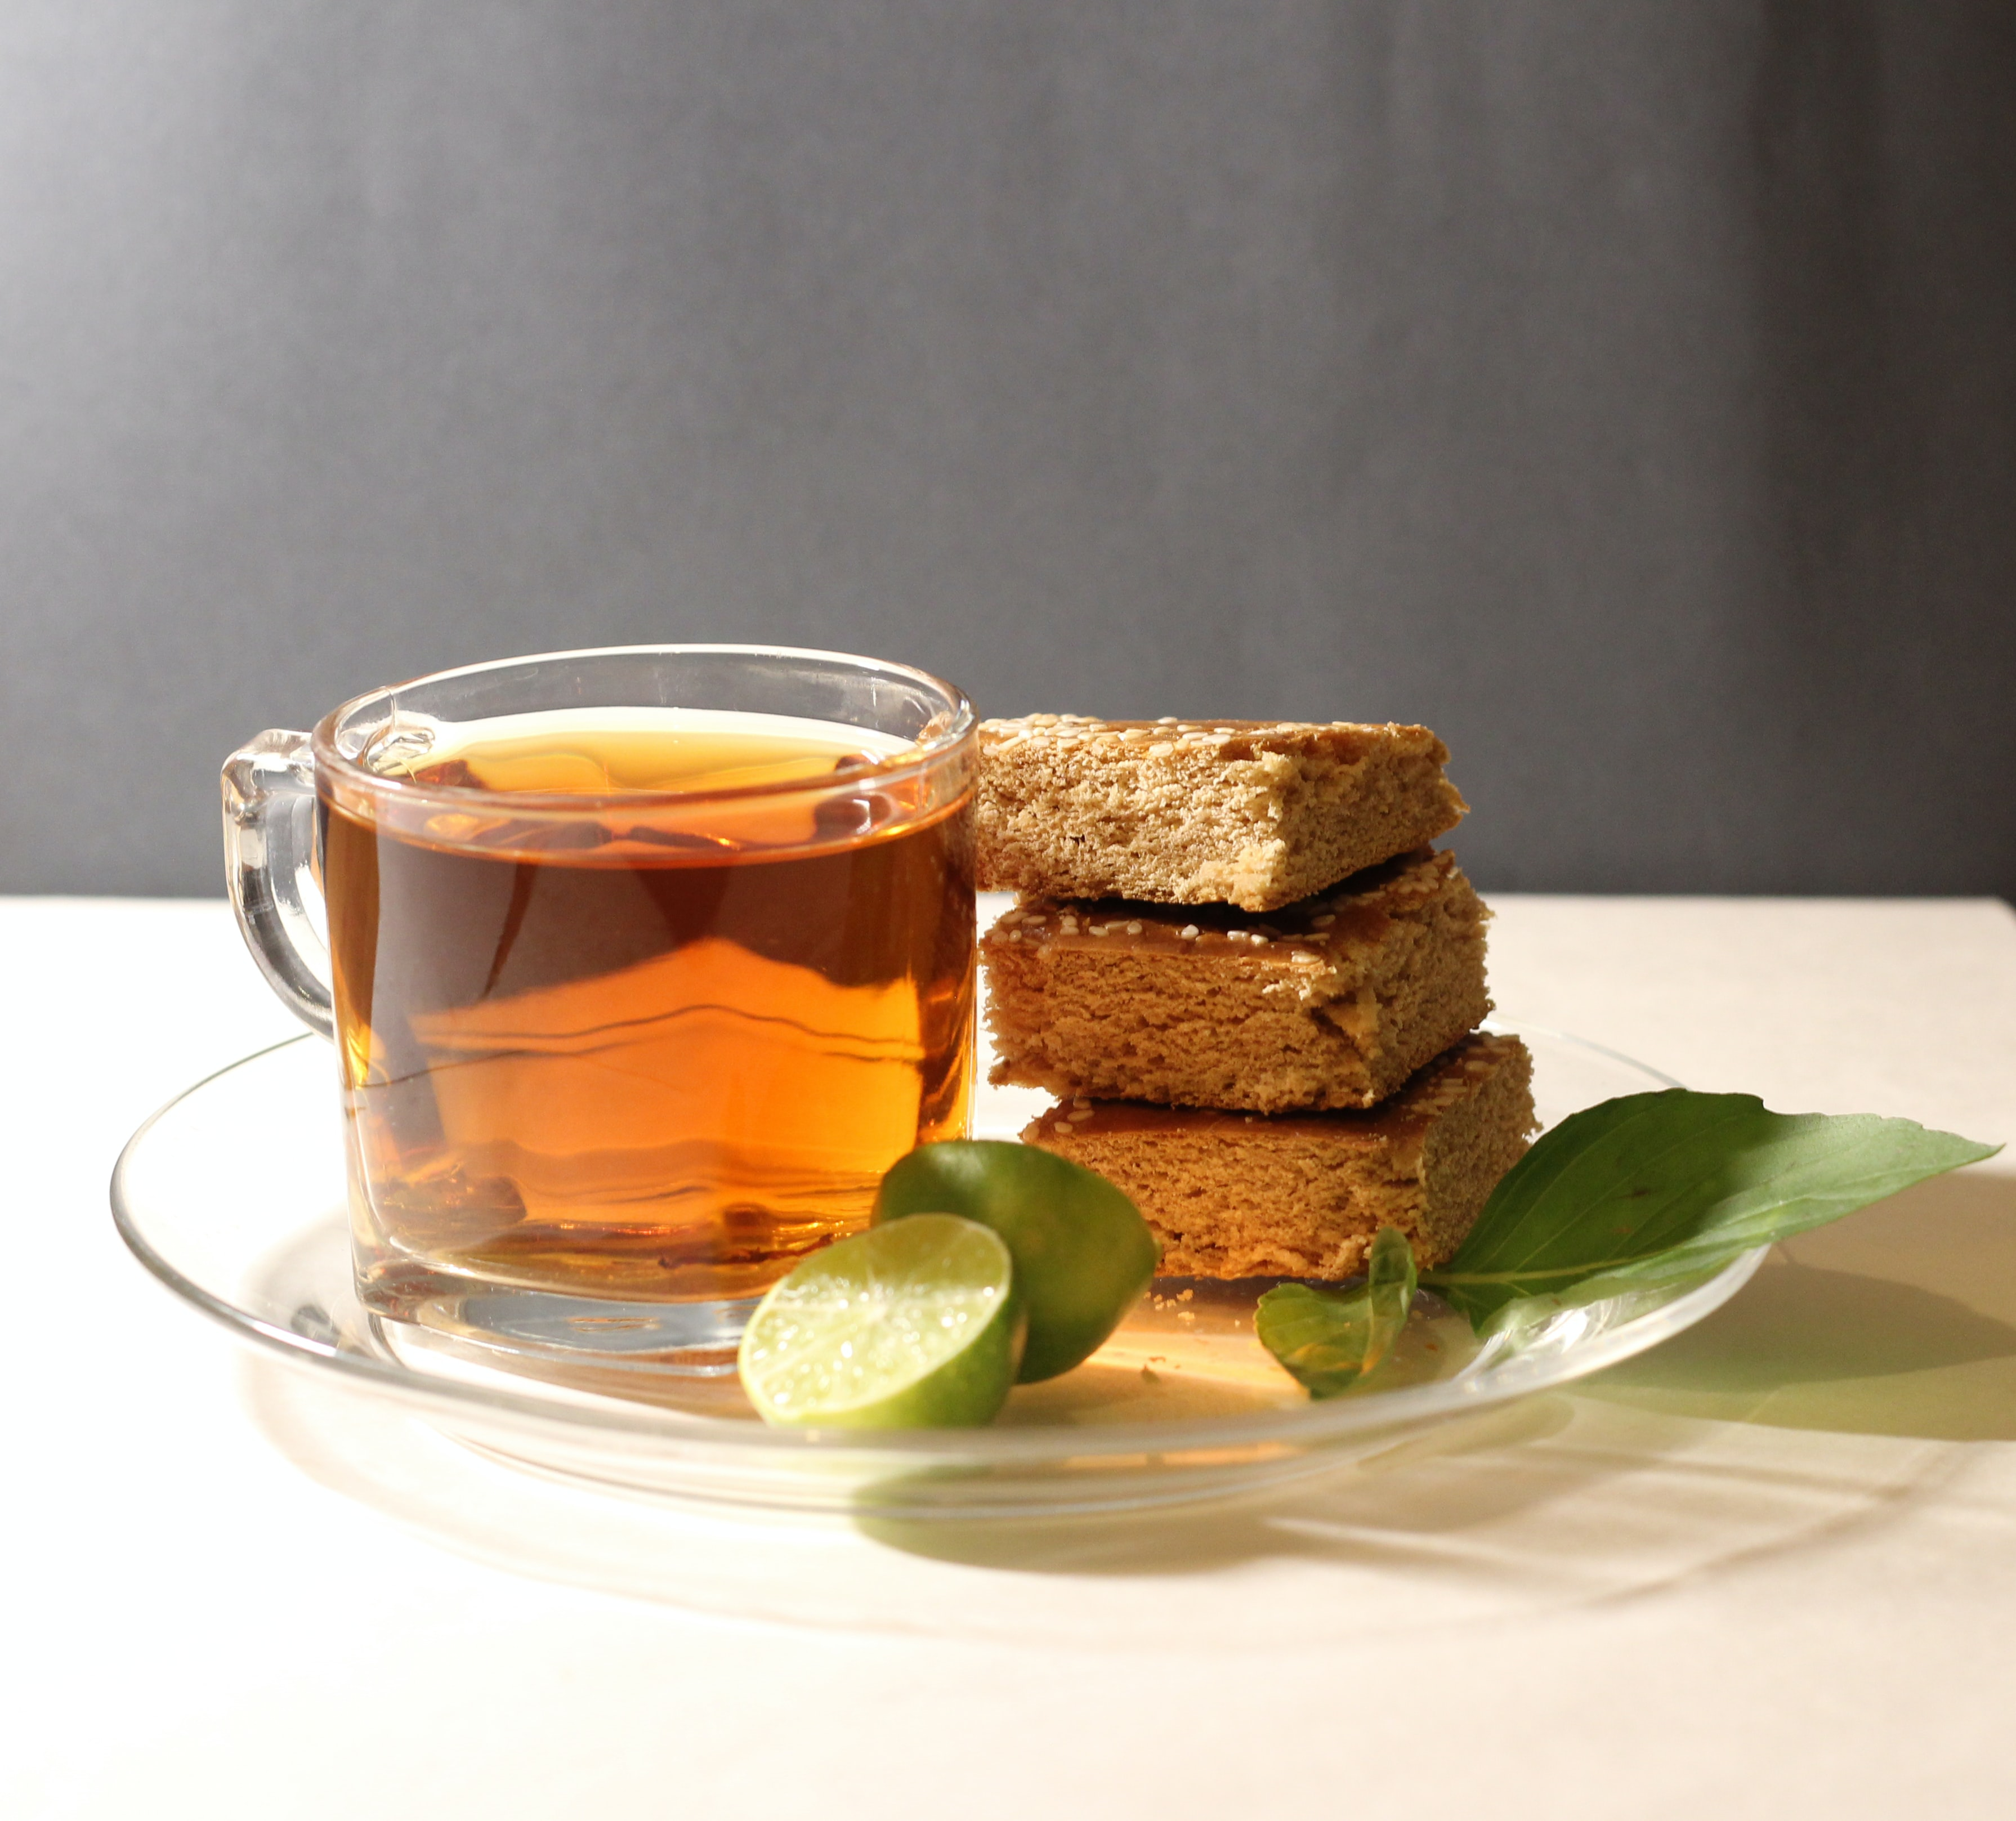 Photo of tea and baked good